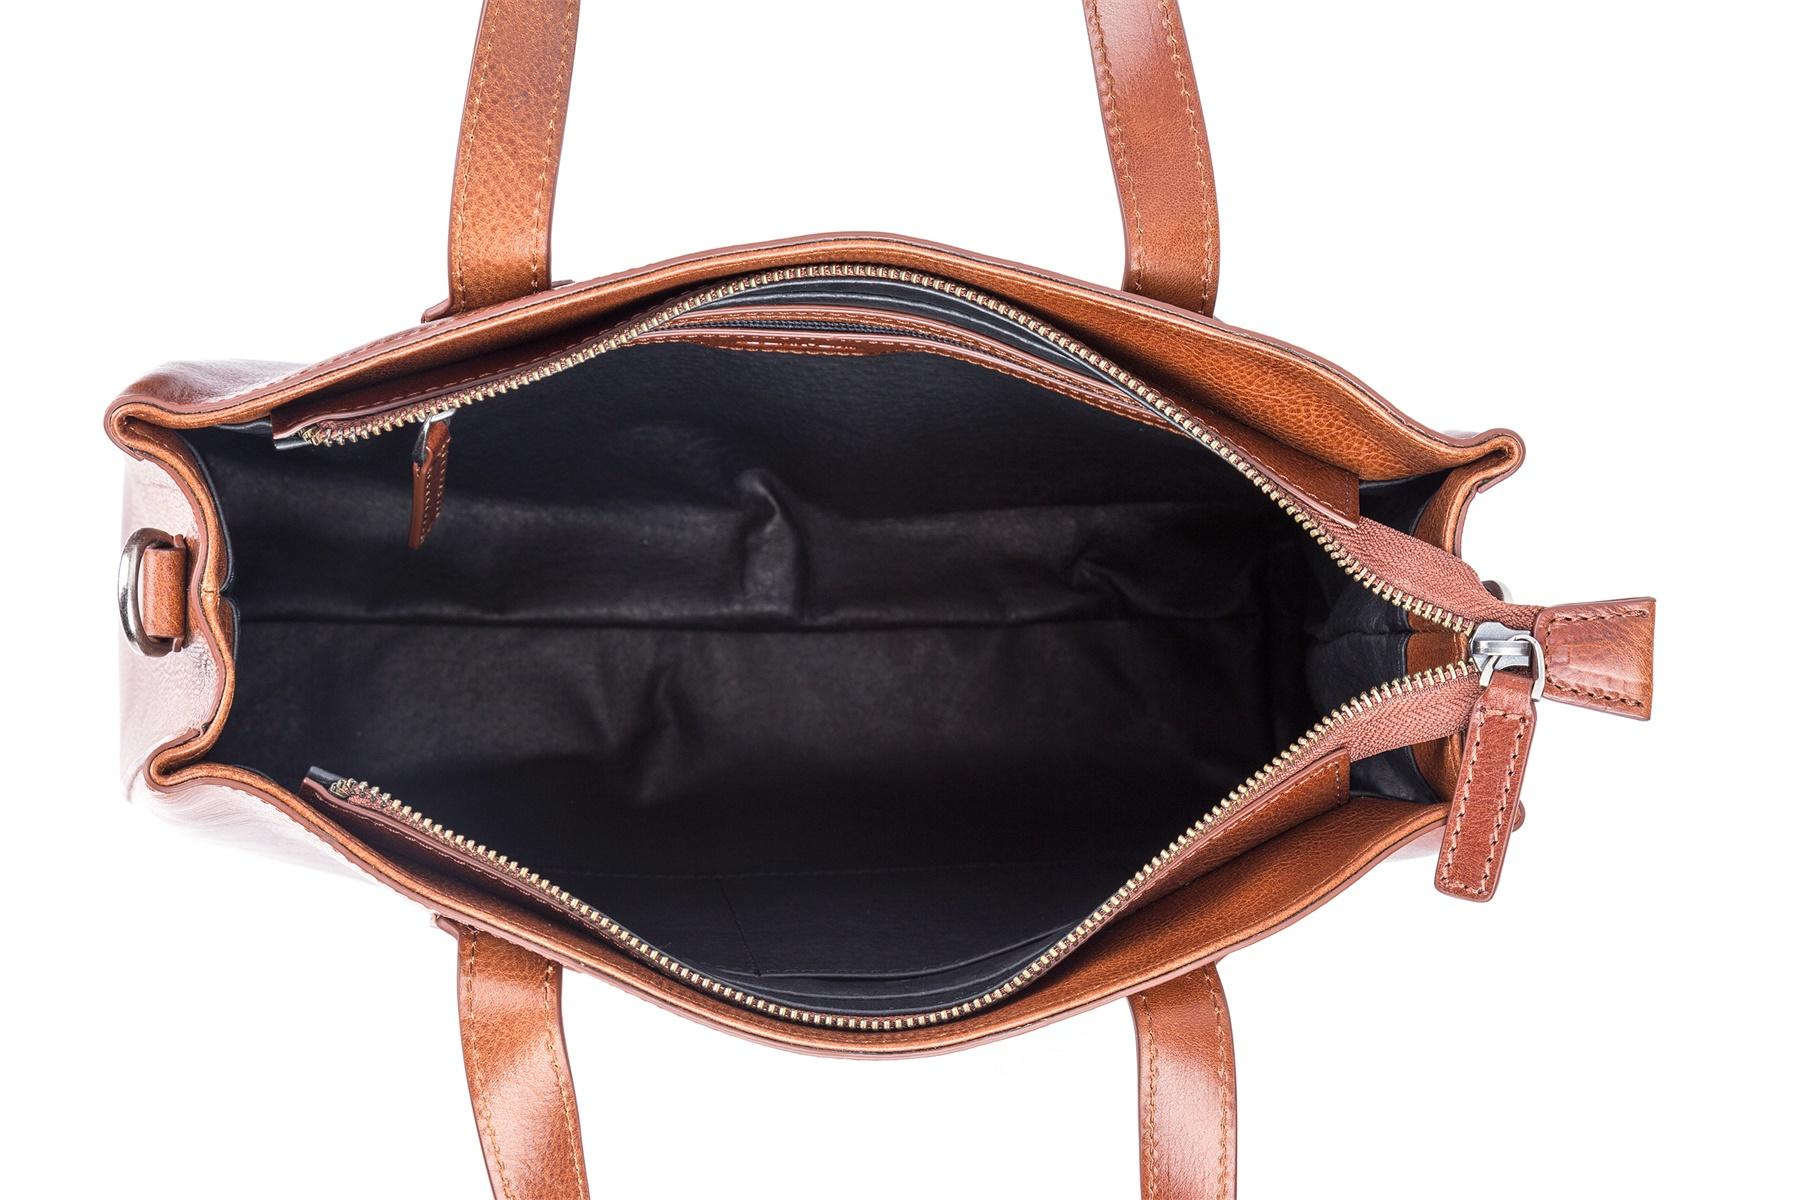 Handbag top handle waxed leather zipper close bag